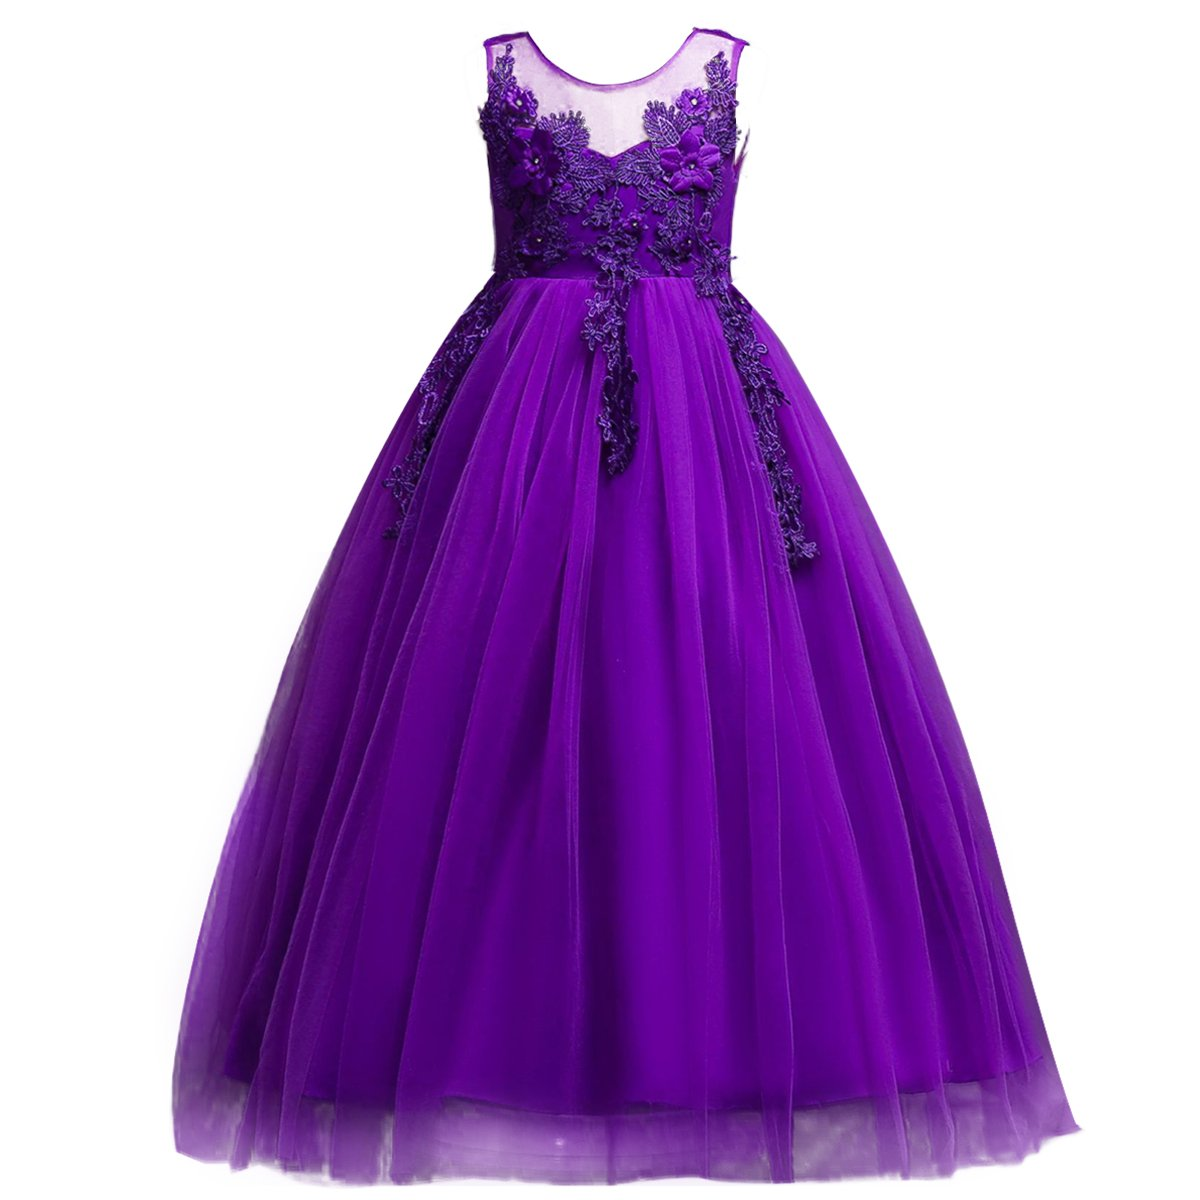 IWEMEK Lace Flower Girls Bridesmaid Wedding Party Birthday Princess Pageant Formal Tulle Long Dress Ball Gown Baby Kids 5-14T Purple 11-12 Years